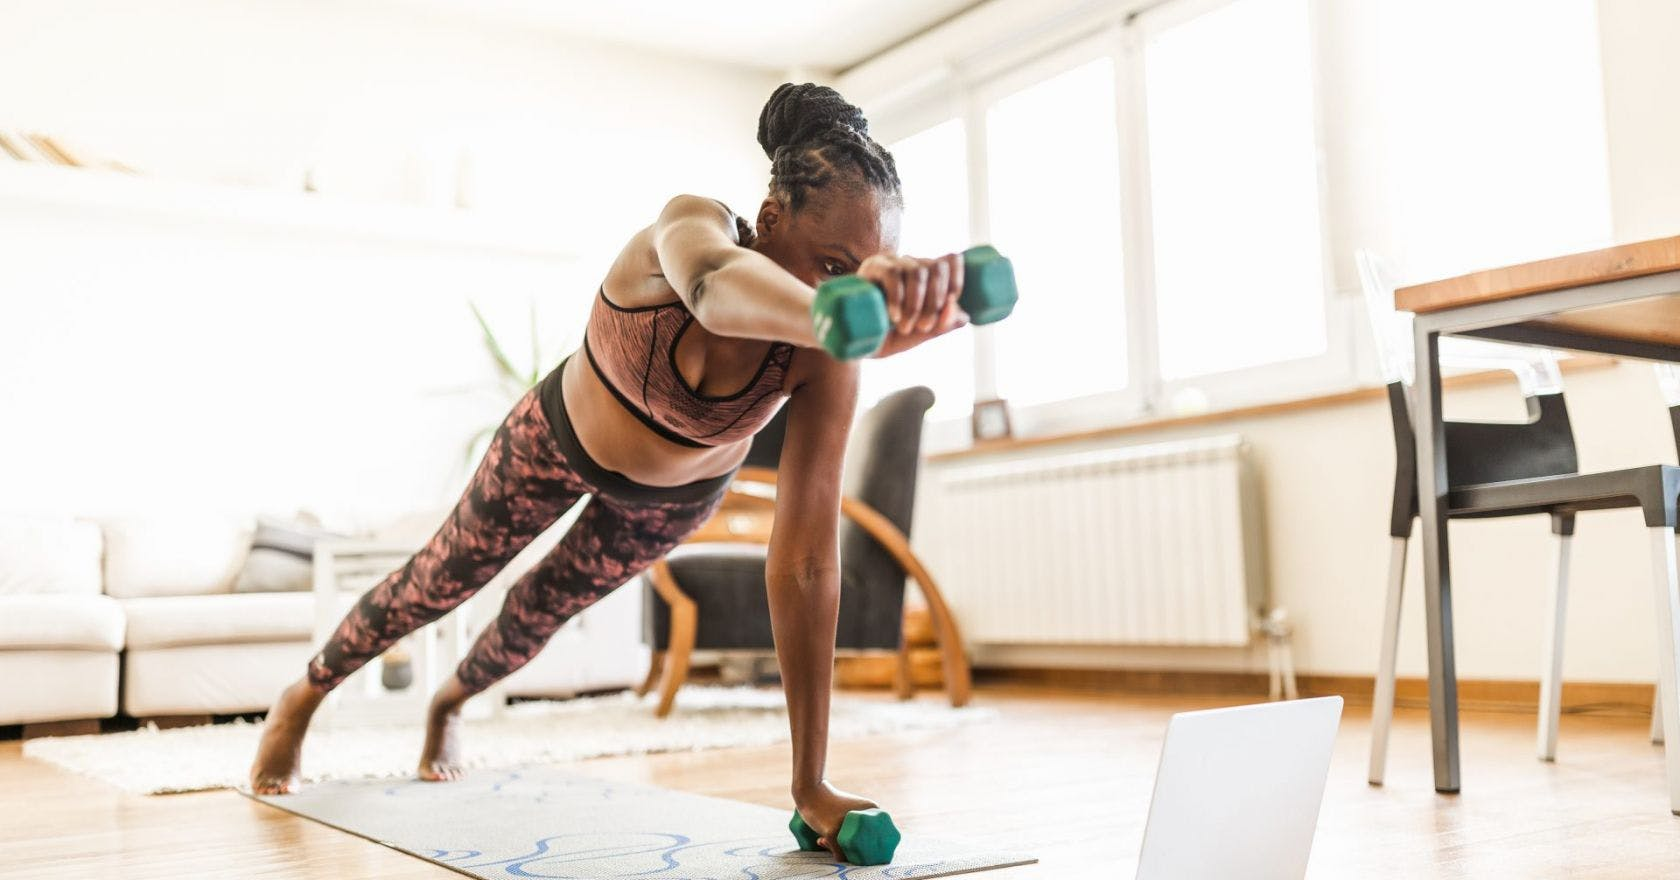 The benefits of strength training with light weights during home workouts